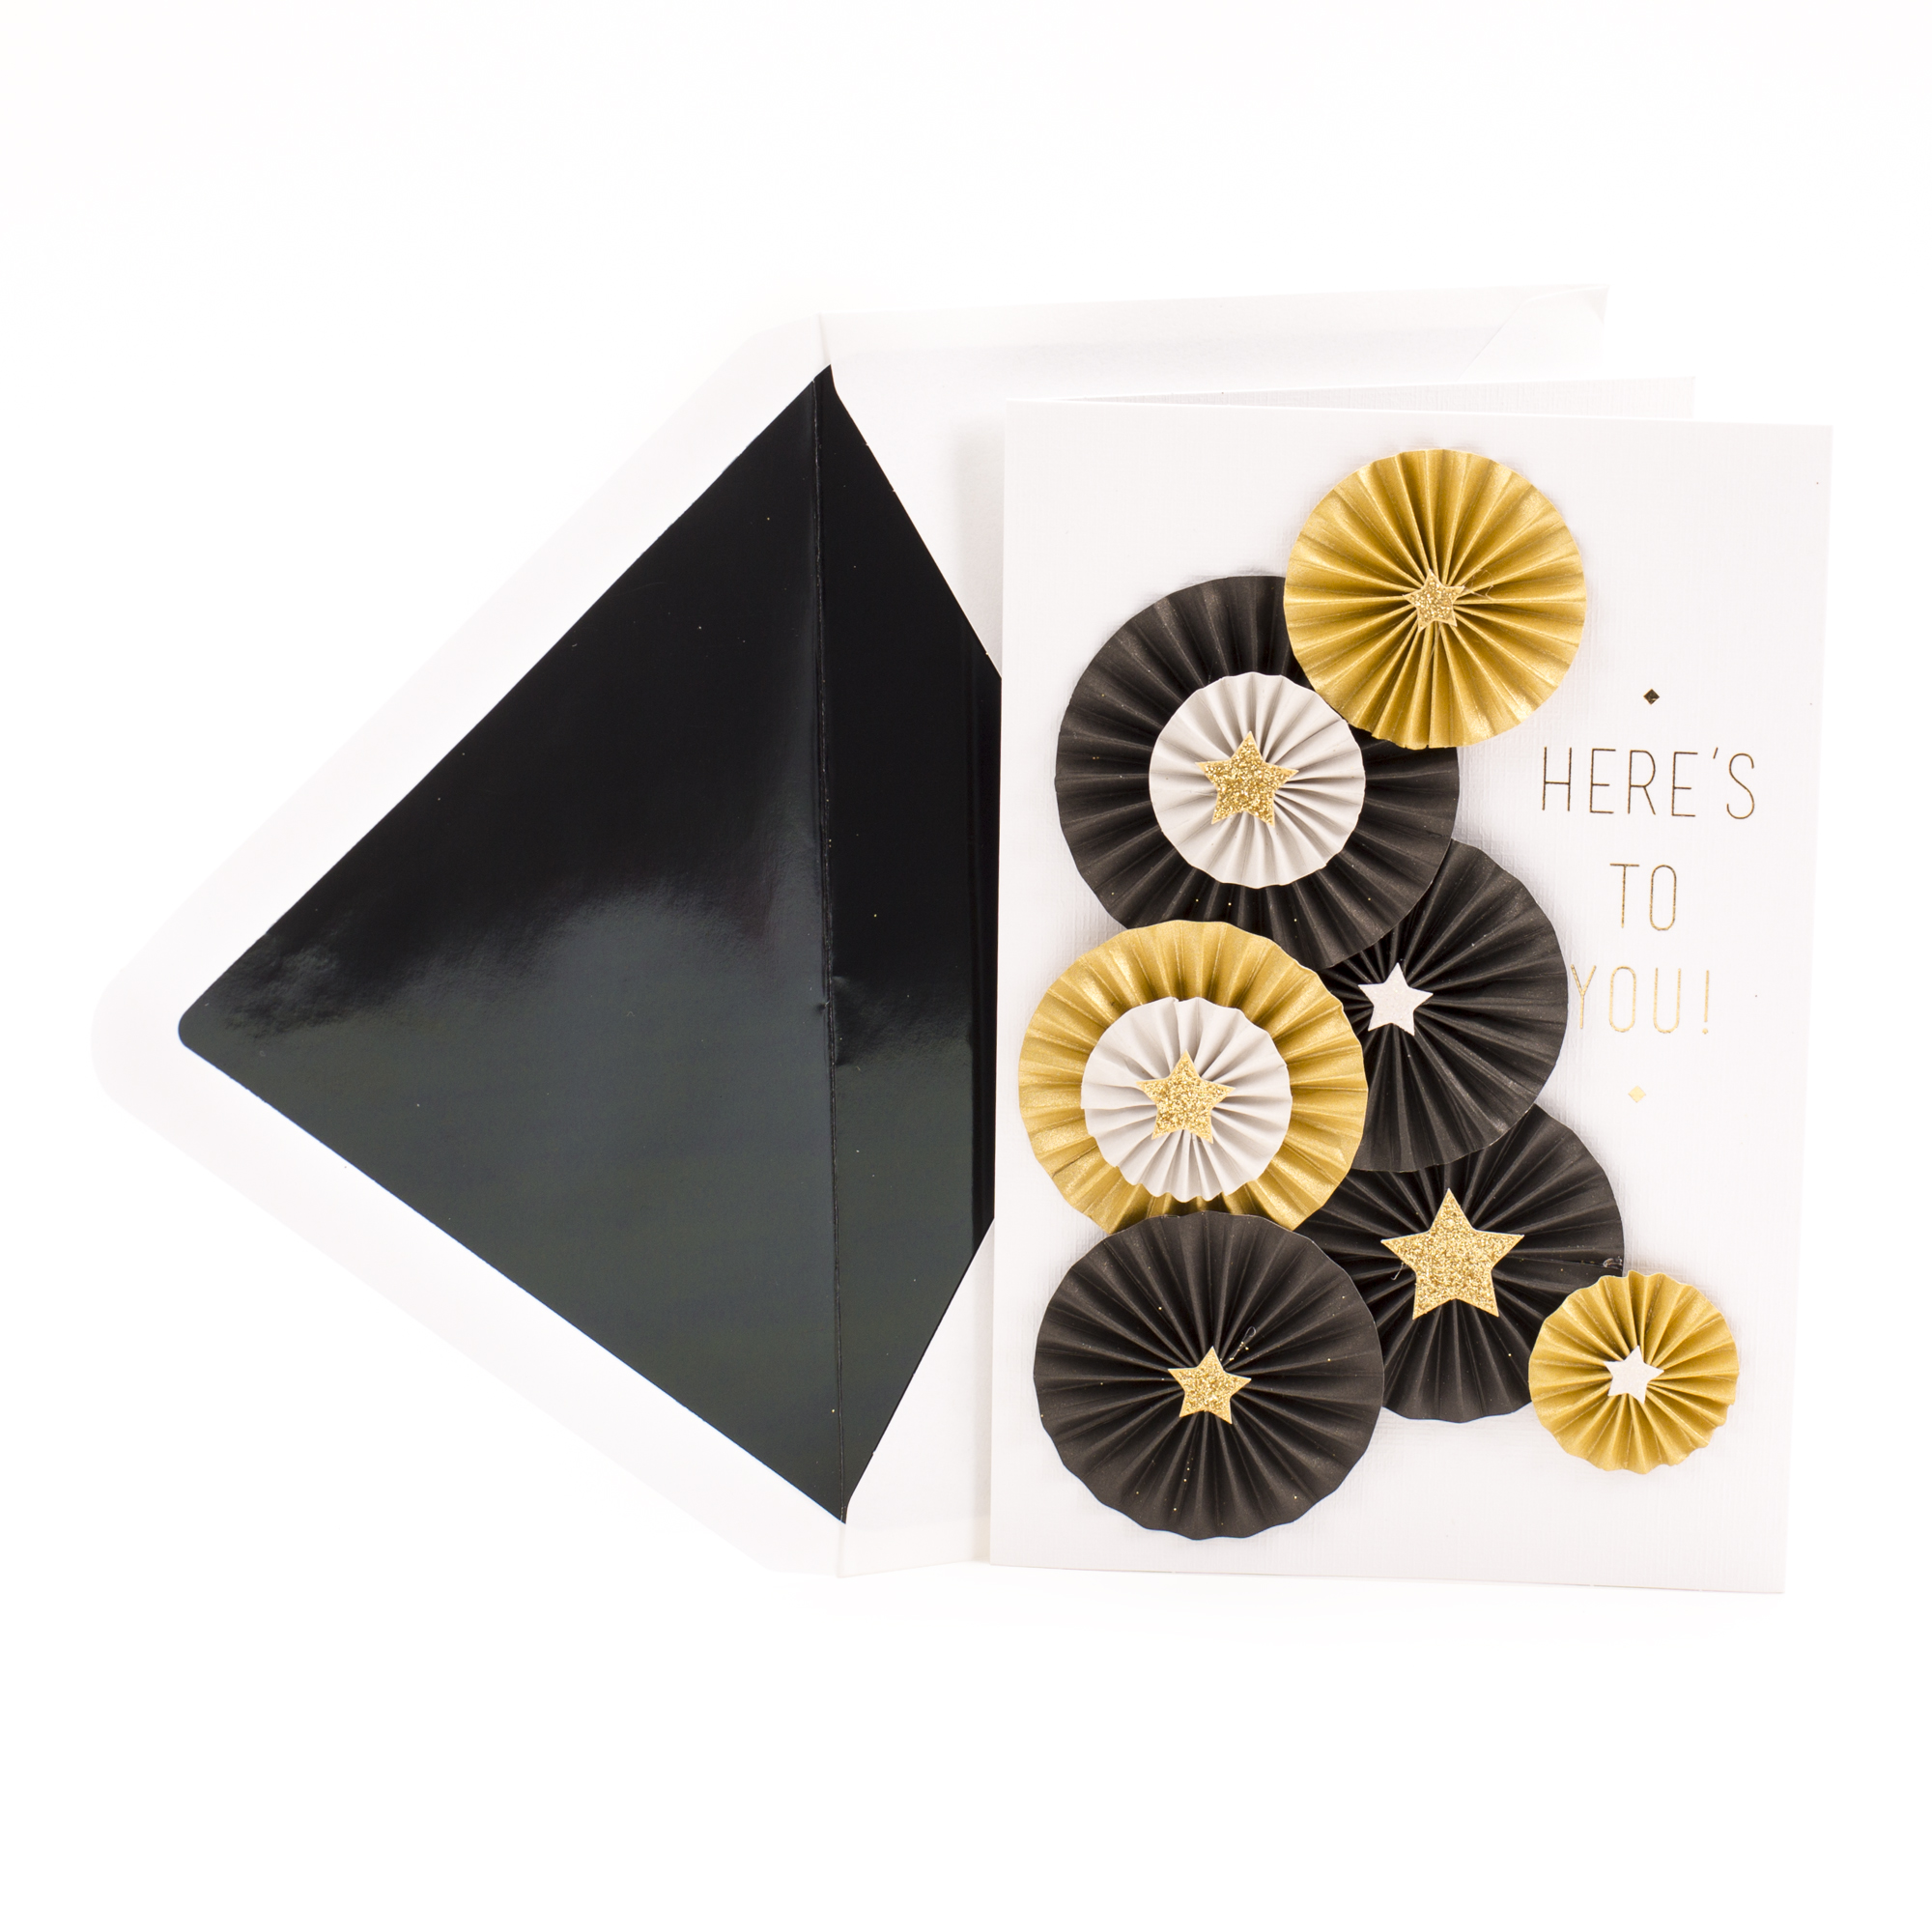 Hallmark Signature, Folded Paper Medallions With Gold Stars Celebrating You, Graduation Greeting Card